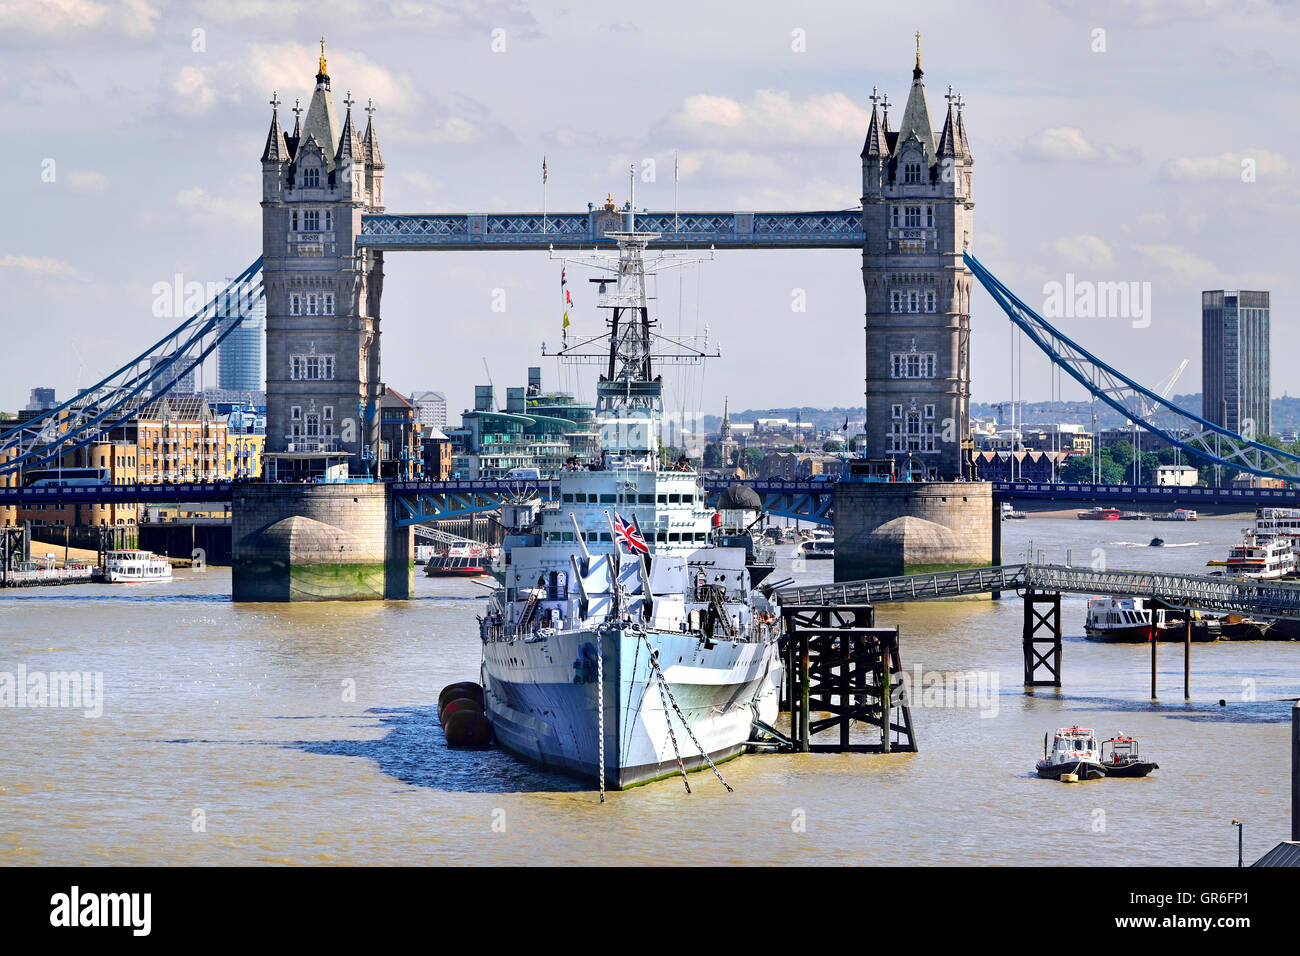 London, England, UK. HMS Belfast (in service 1938-1963: now part of the Imperial War Museum) and Tower Bridge behind - Stock Image